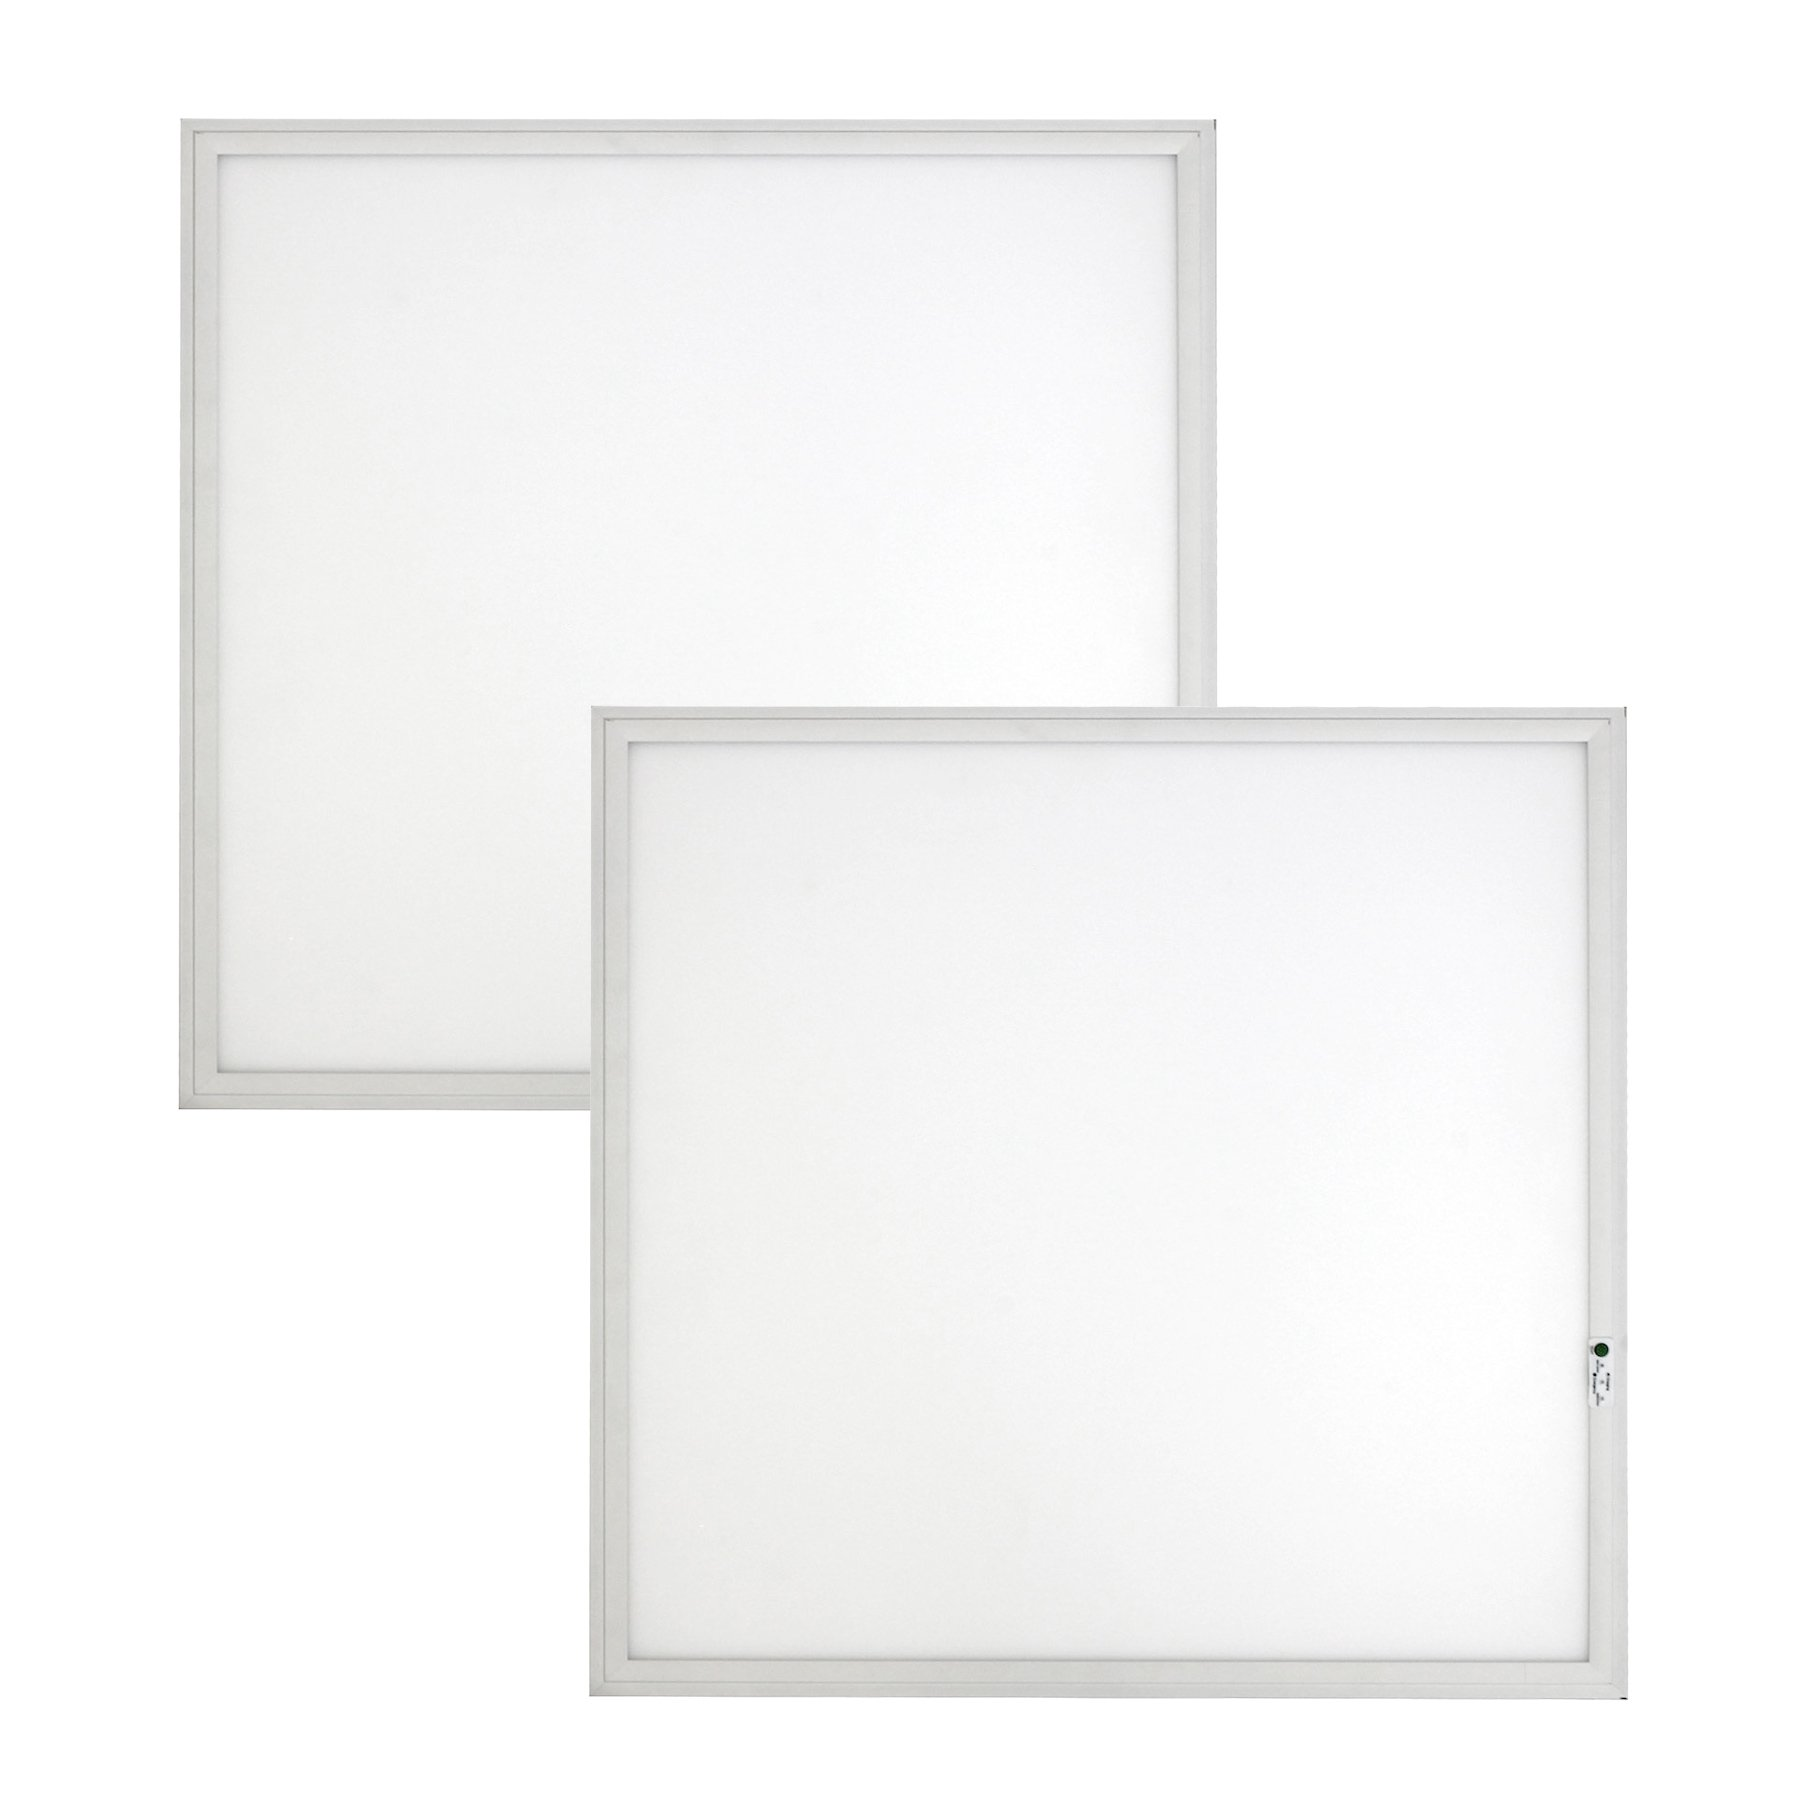 2-pack, 2ft. x 2ft. Dimmable Emergency Flat Panel LED - 17W Backup - 35W, 4550 Lumens 4000K Bright White